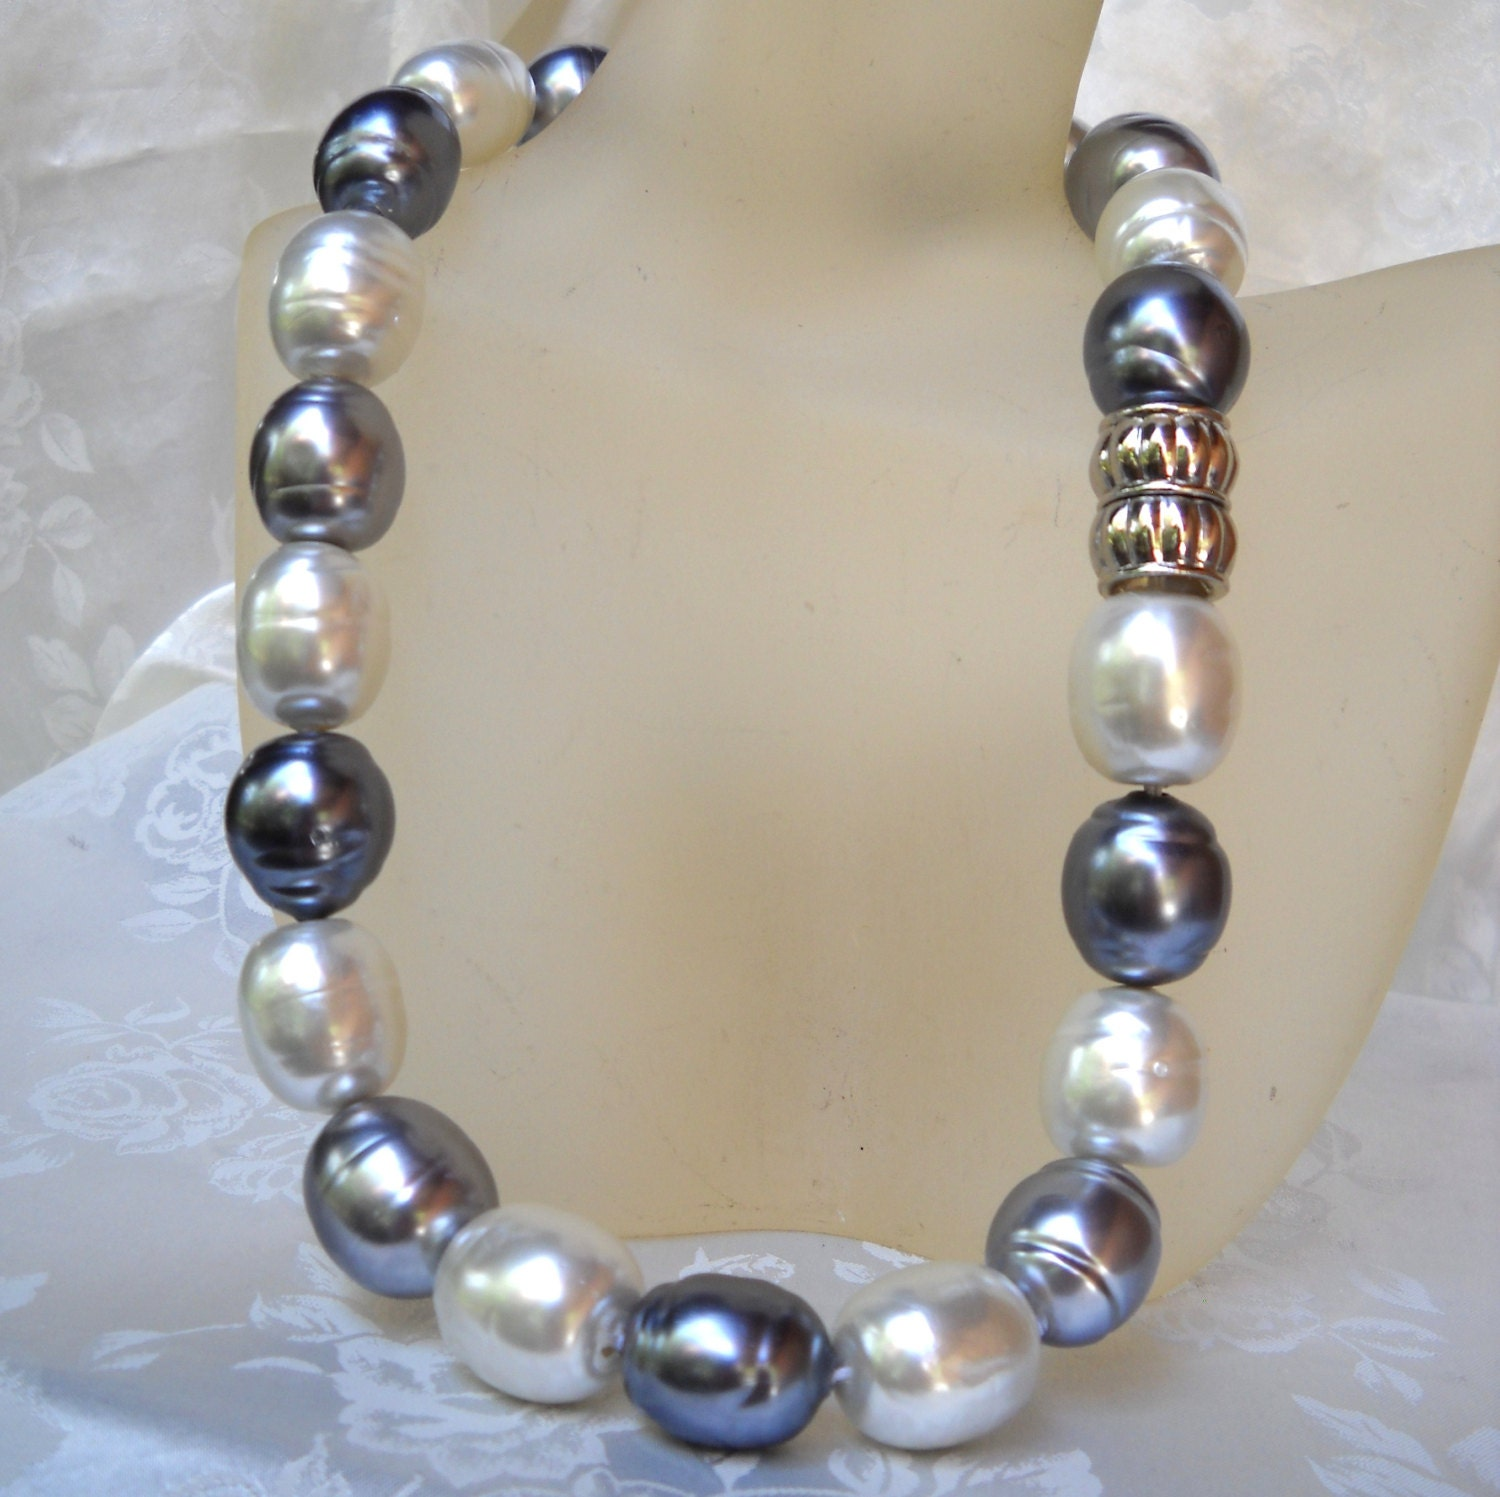 Mallorca Pearl Necklace: Baroque Majorca/Mallorca Pearl Necklace Multi-color Single